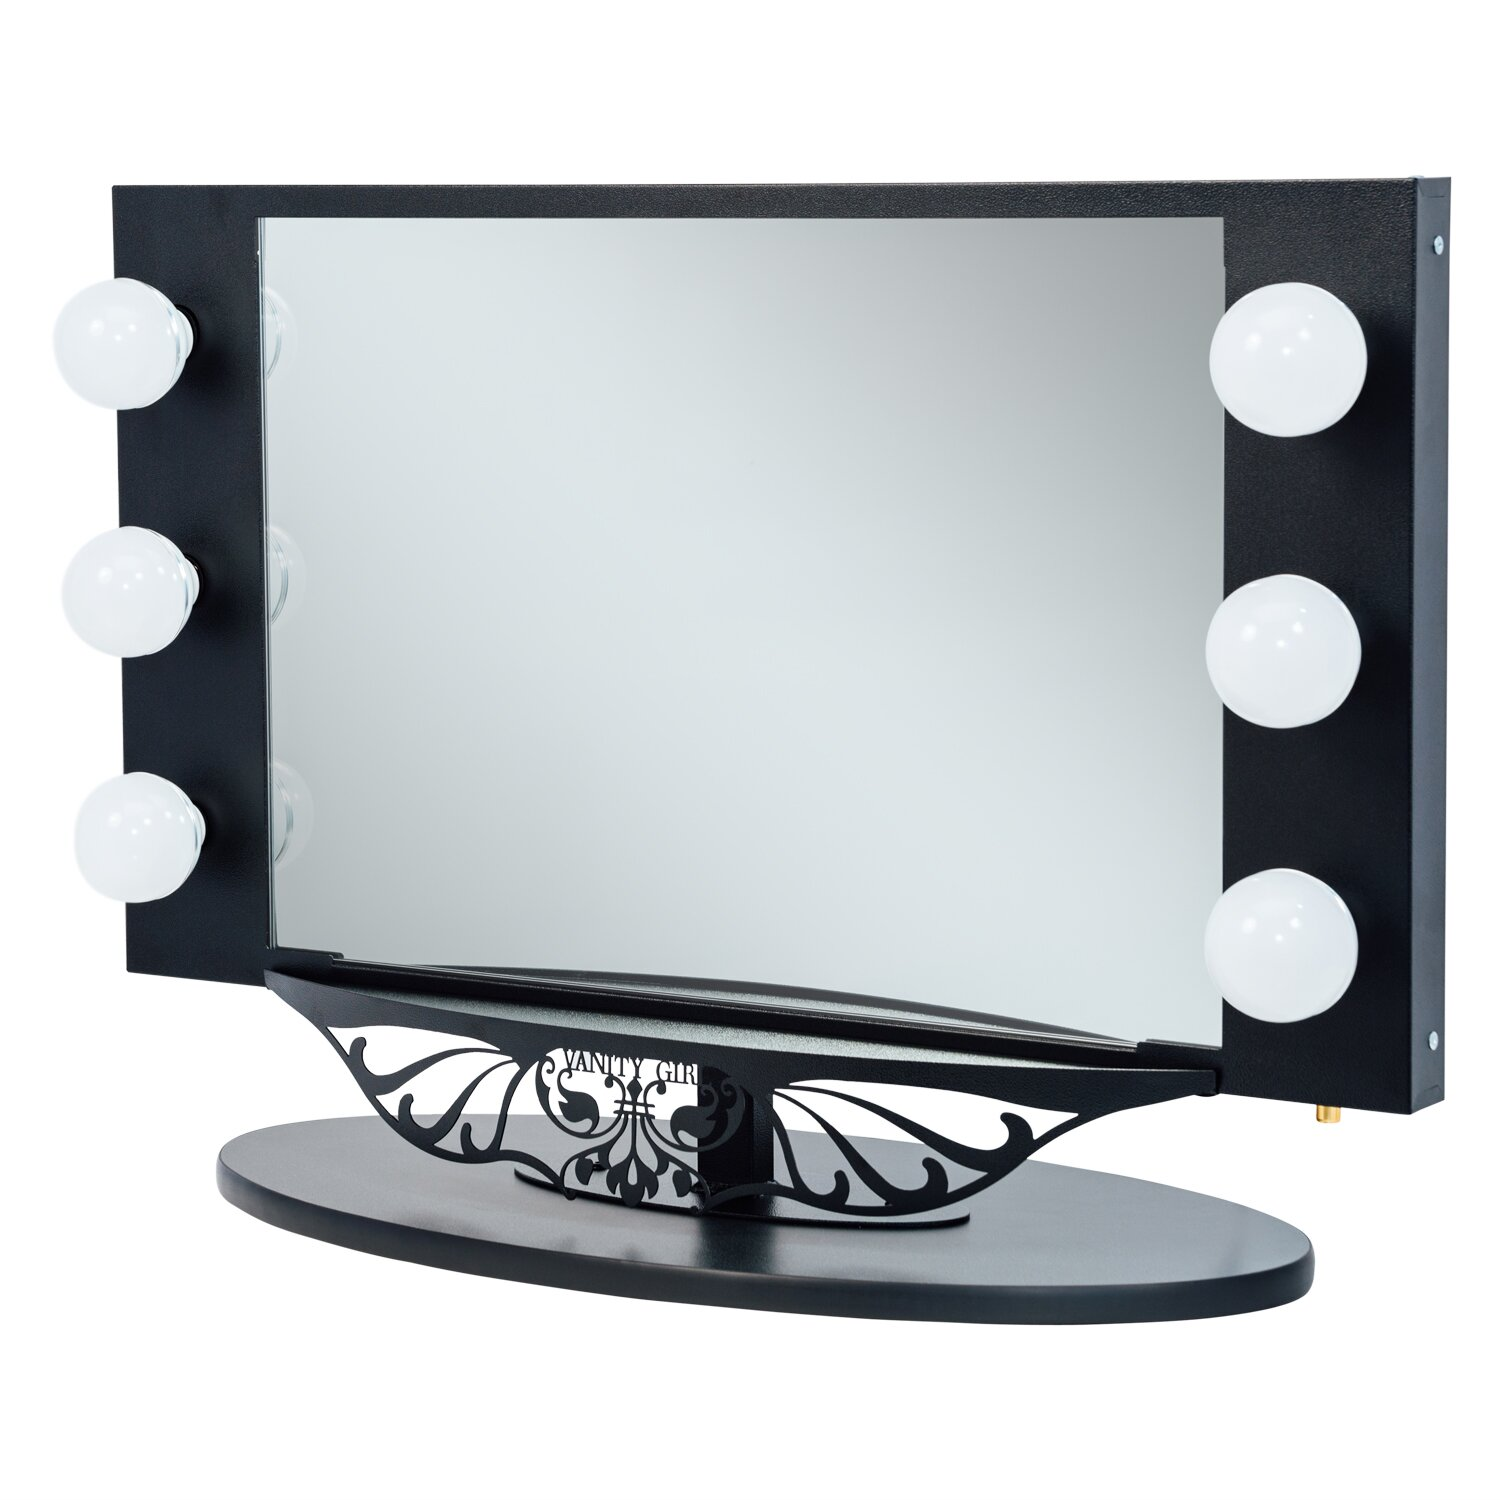 Vanity Girl Lighted Mirror : Vanity Girl Hollywood Starlet Lighted Vanity Mirror & Reviews Wayfair